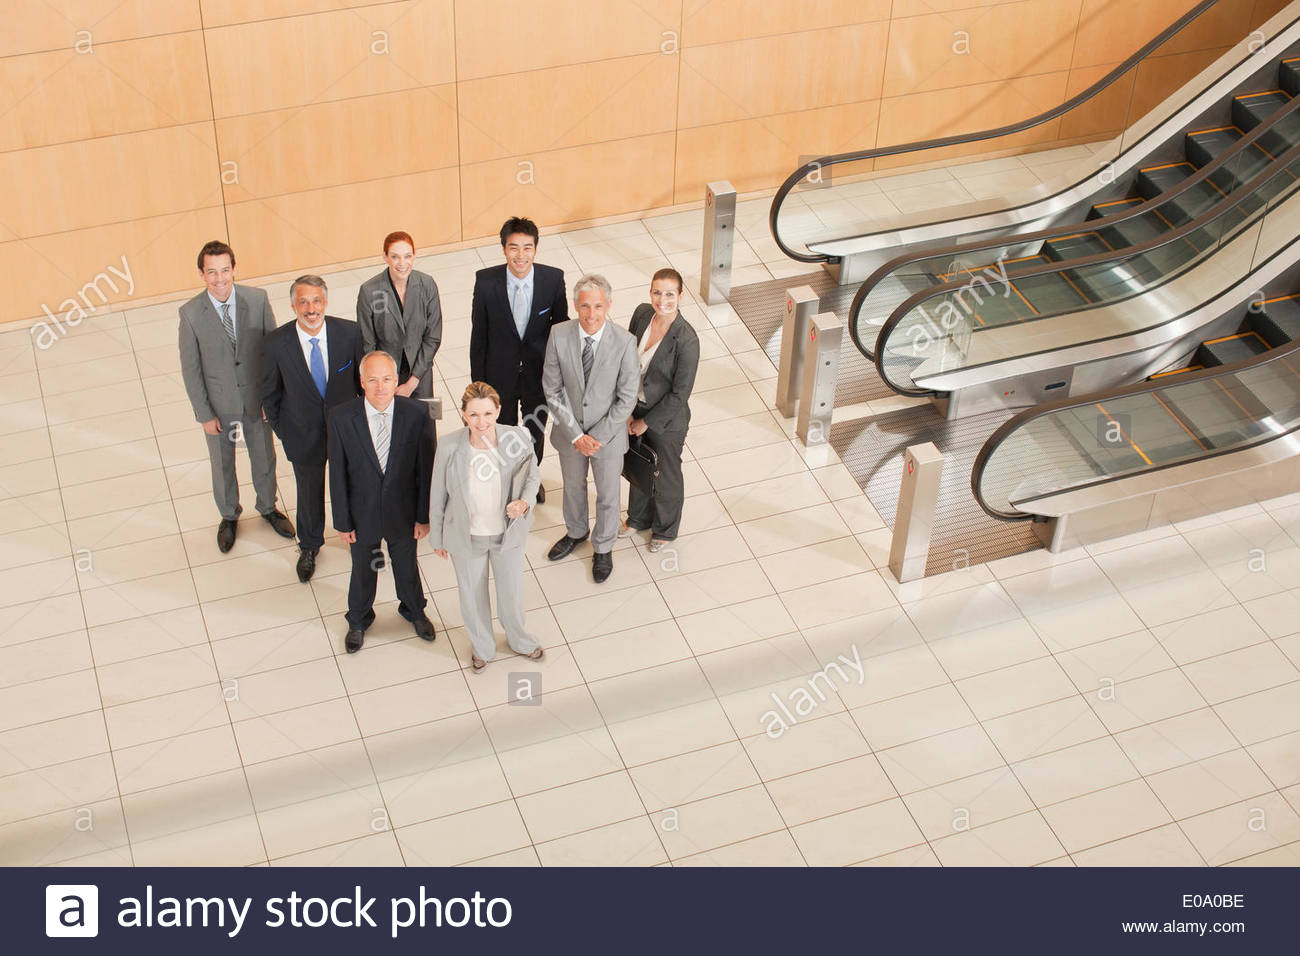 Business people at bottom of escalator - Stock Image